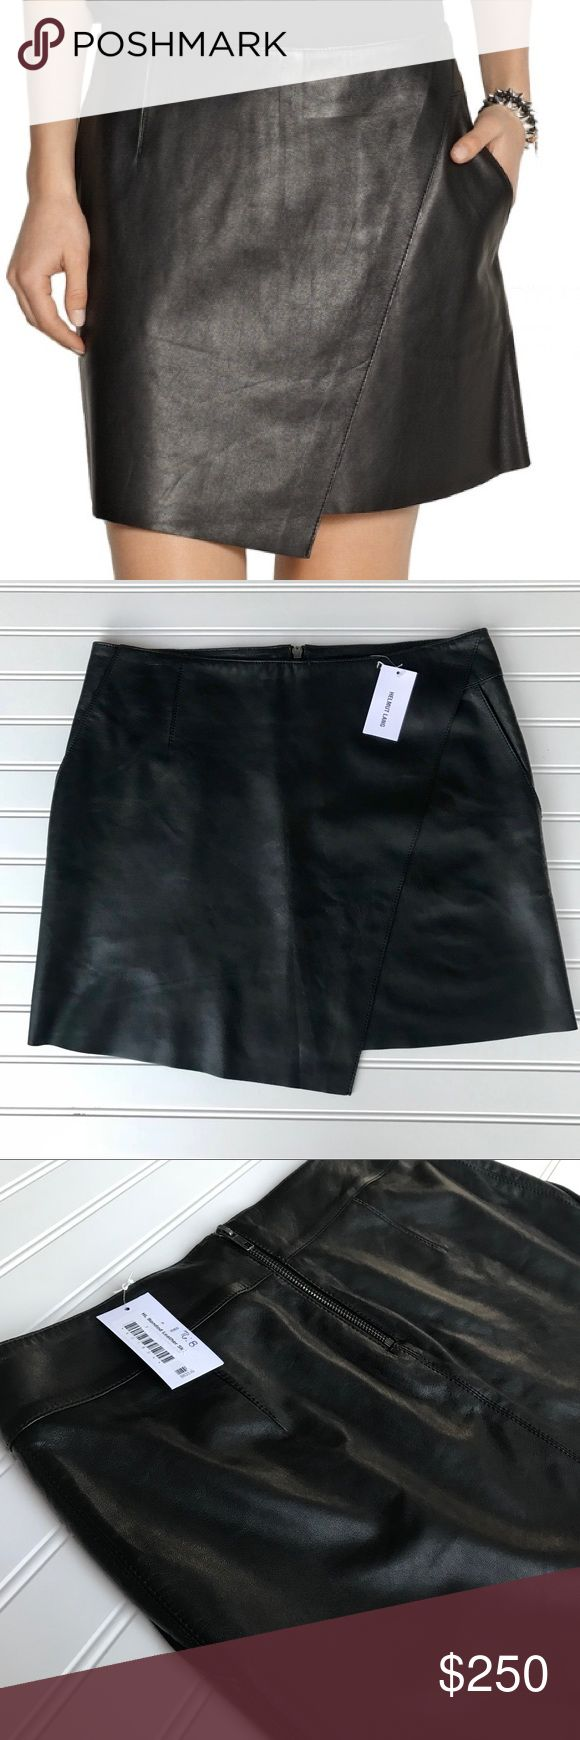 NWT Helmut Lang Lamb Leather Black Skirt Size 8 Stilt Bonded leather mini skirt. Wrap-effect front, fully lined in stretch-jersey. Zip fastening along back. 100% leather (lamb); lining: 94% polyester, 6% spandex. Specialist clean. Mini-length, sits at the hip. Supple, non-stretchy leather. Color: black Size 8 NWT  Small minor imprint on waist where hanger was, please see pictures. Helmut Lang Skirts Mini